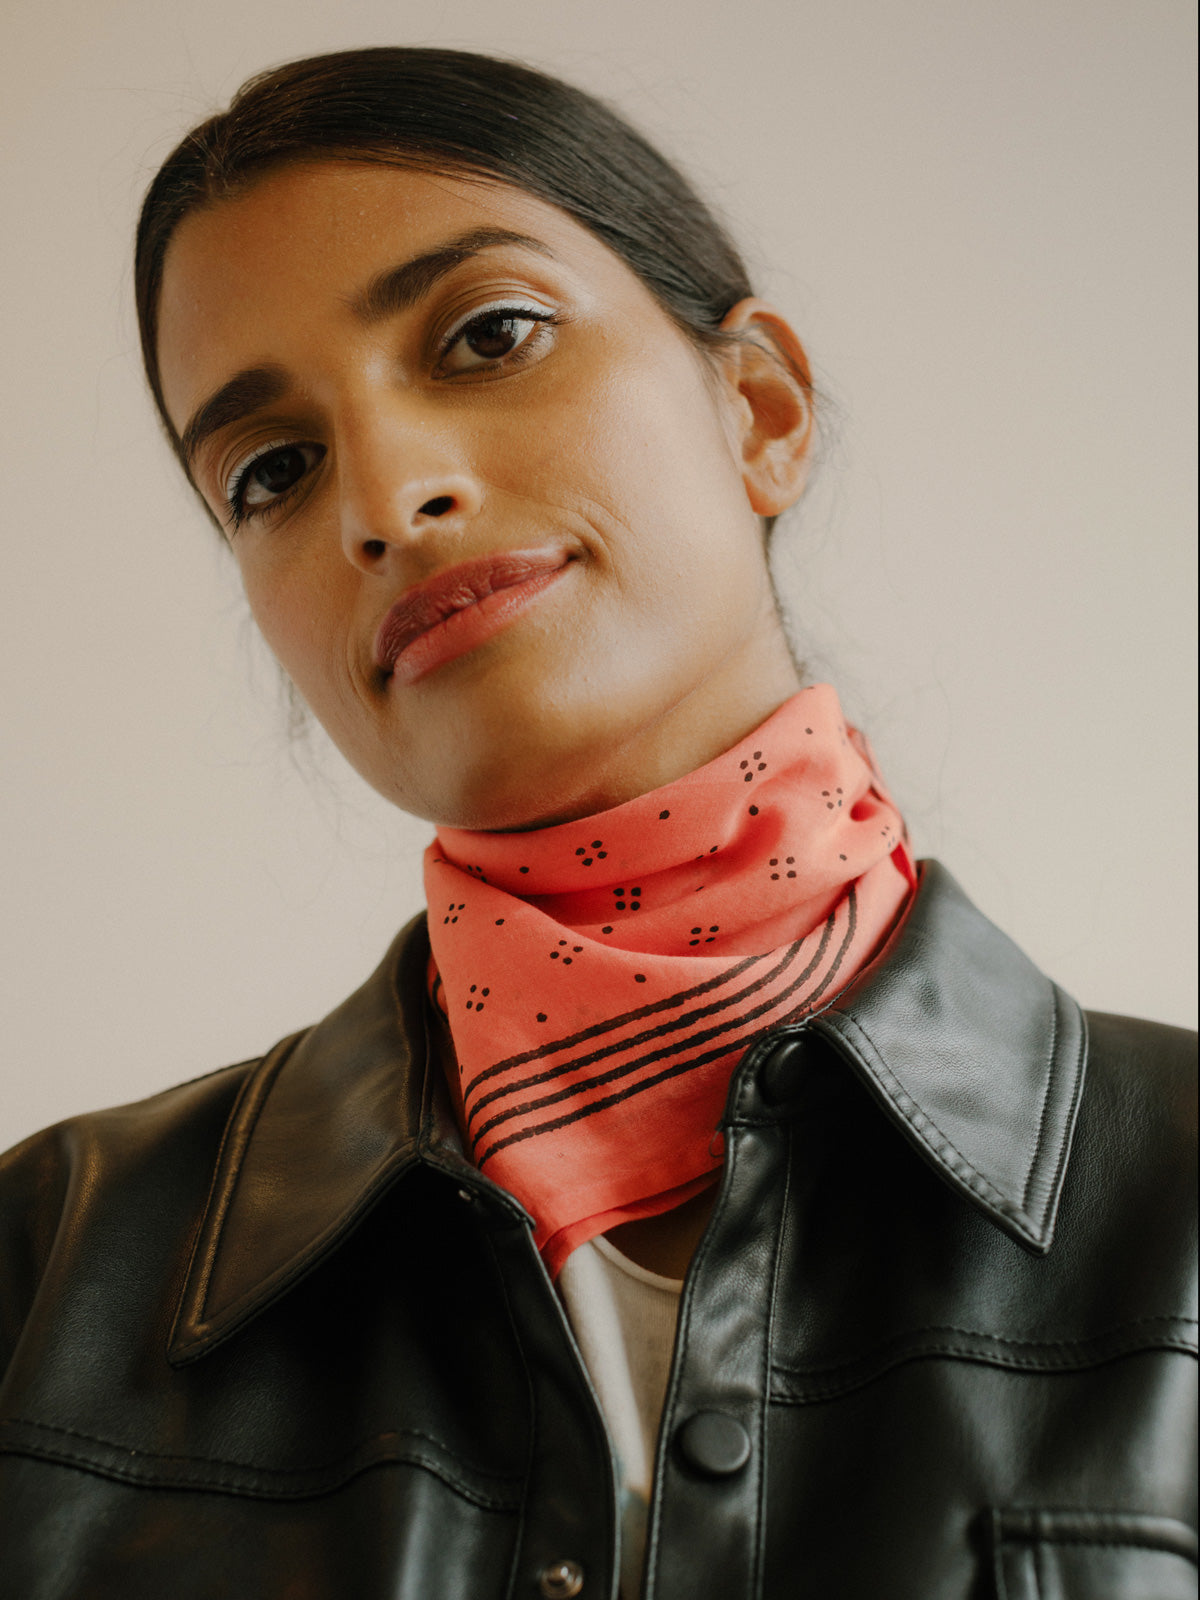 Coral block printed bandana with a delicate black dot pattern and striped pattern